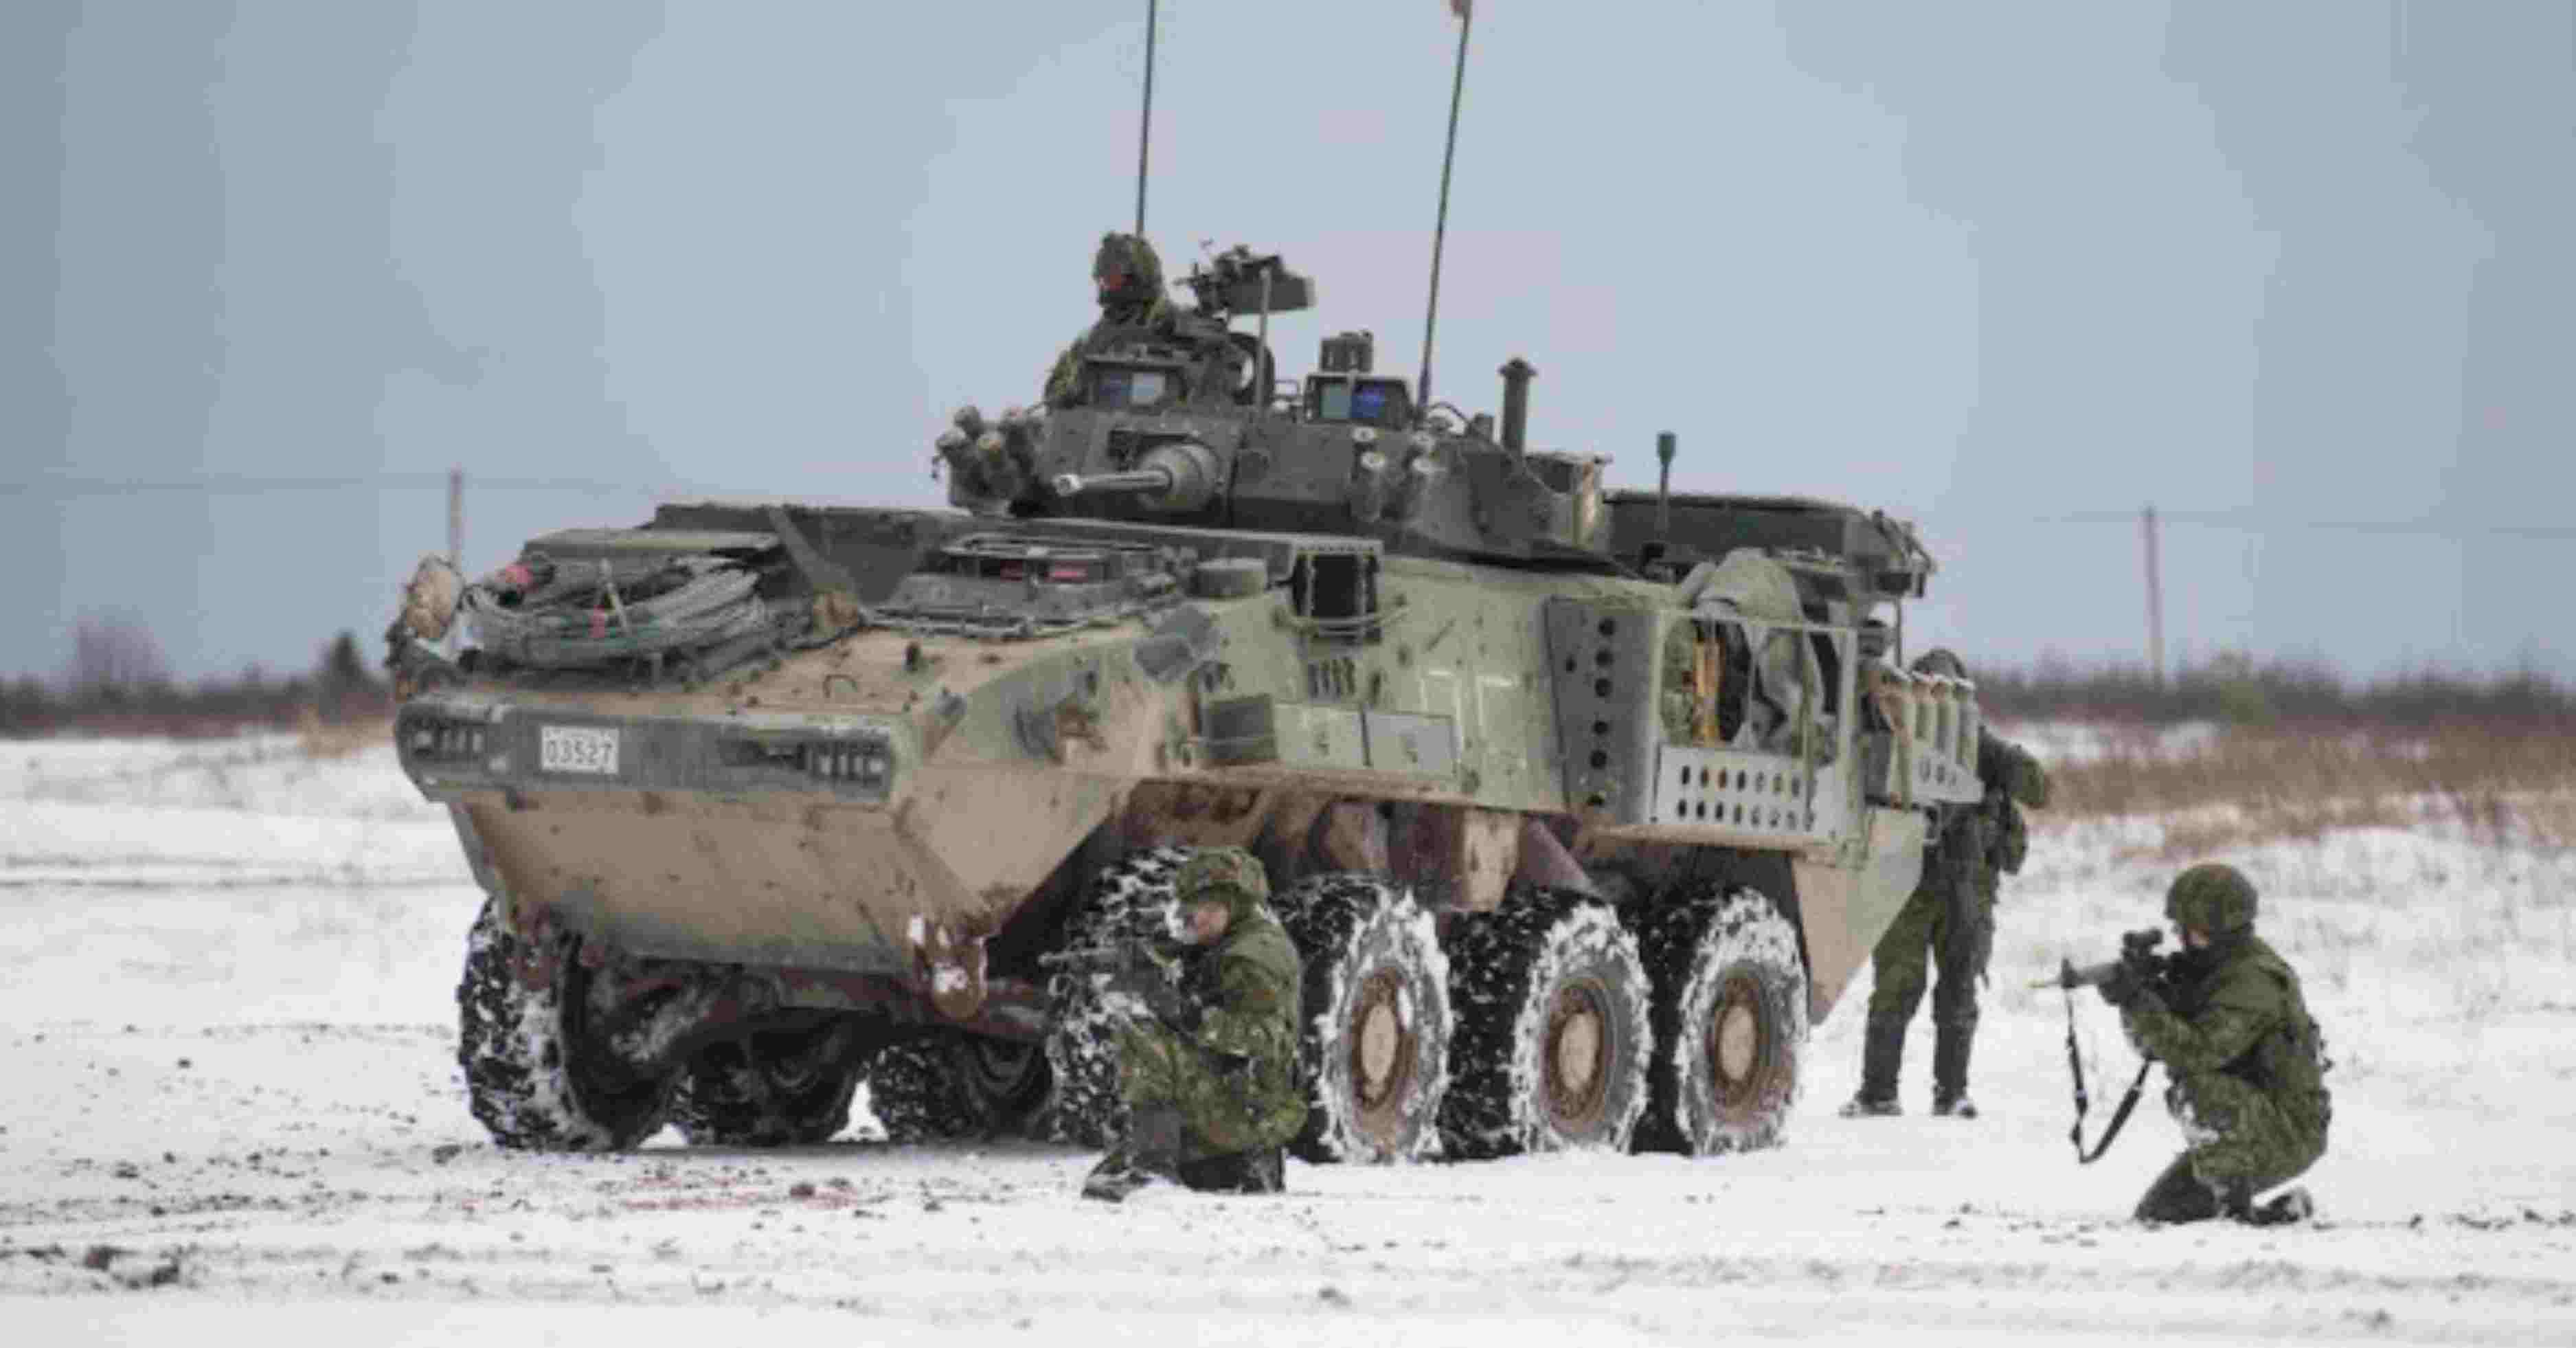 $621.5 Million Contract Awarded to General Dynamics for 3 Land C4ISR by the Canadian Army